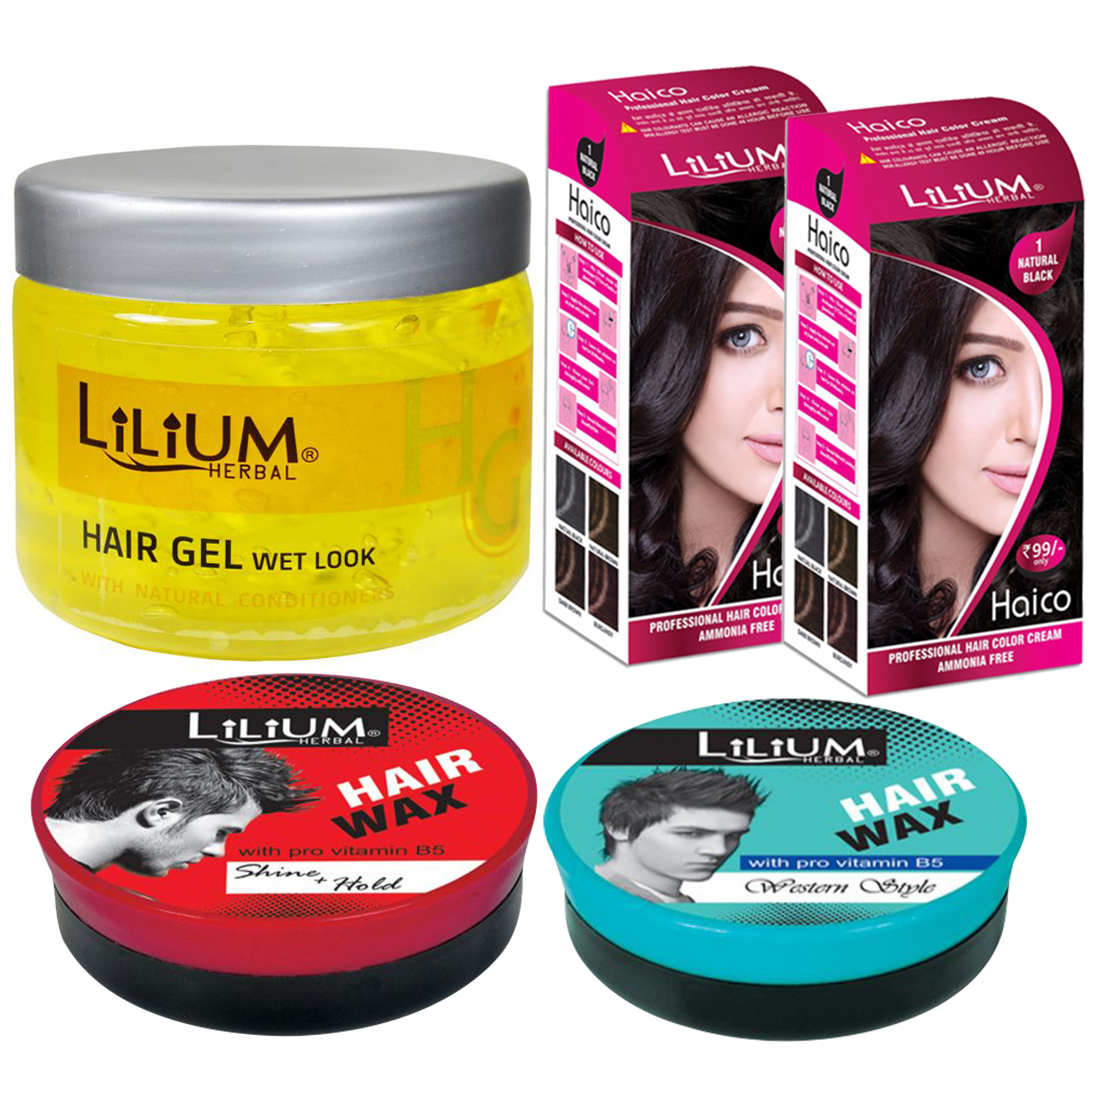 Lilium Wet Look Hair Gel, Hair Wax With Natural Black Hair Color, (GC838) Pack of 5